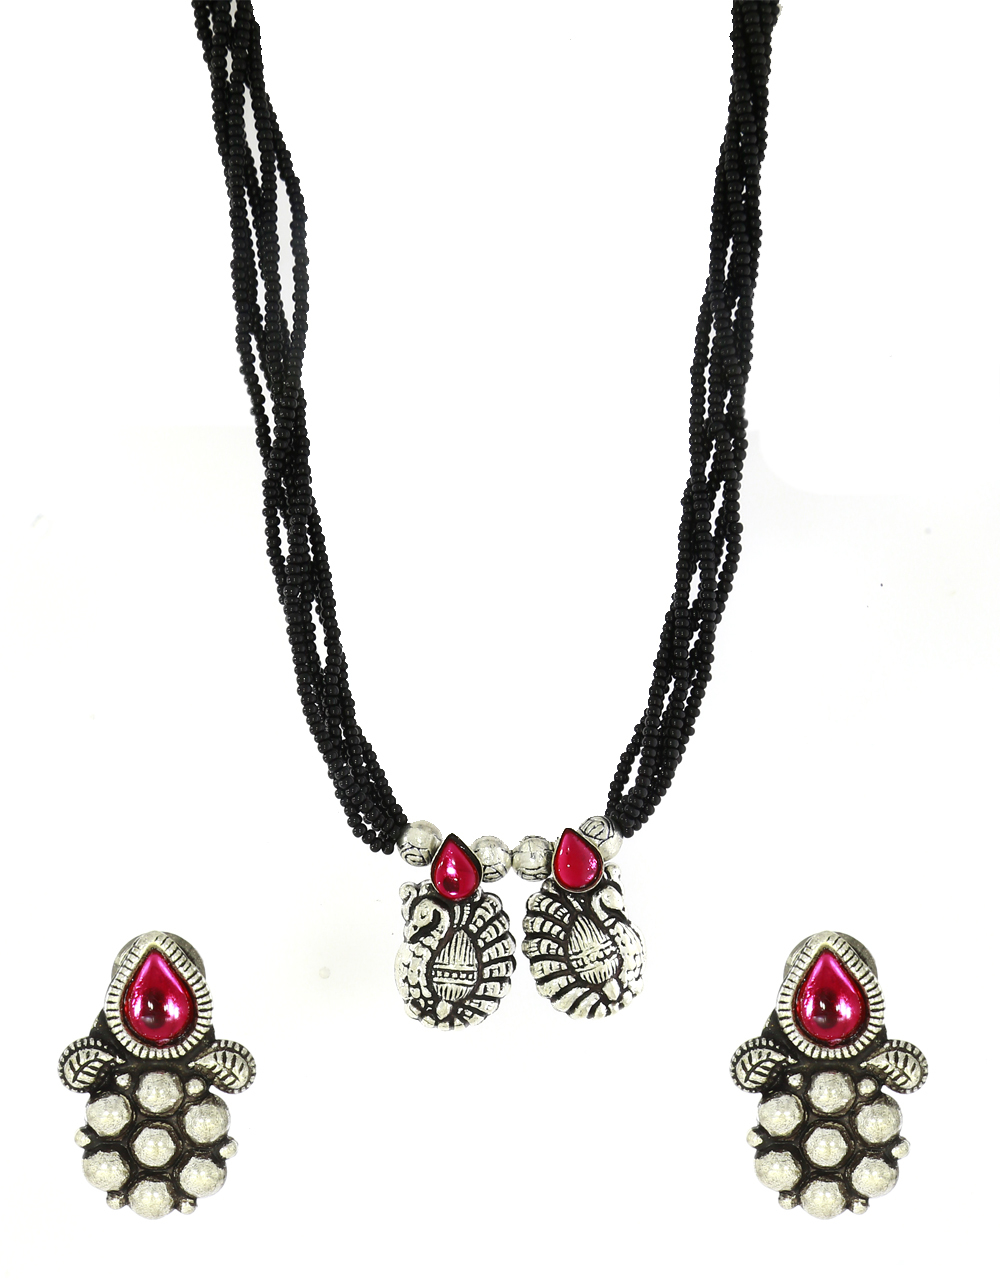 Peacock Styled Oxidized Mangalsutra Set|Silver Jewellery|Traditional Mangalsutra Set For Women